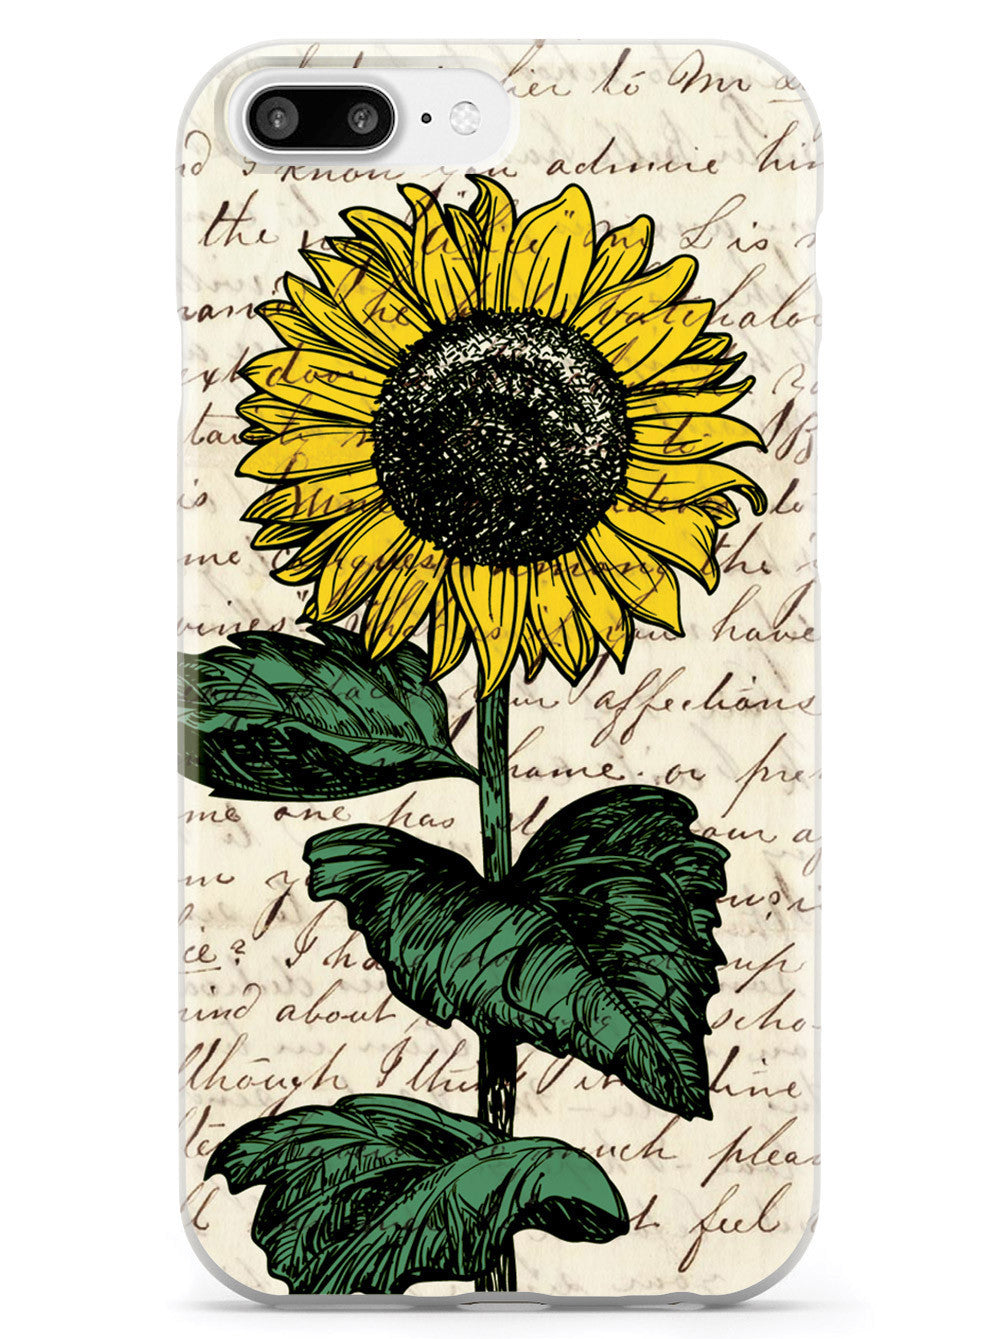 Sunflower Drawing - Vintage Letter Case